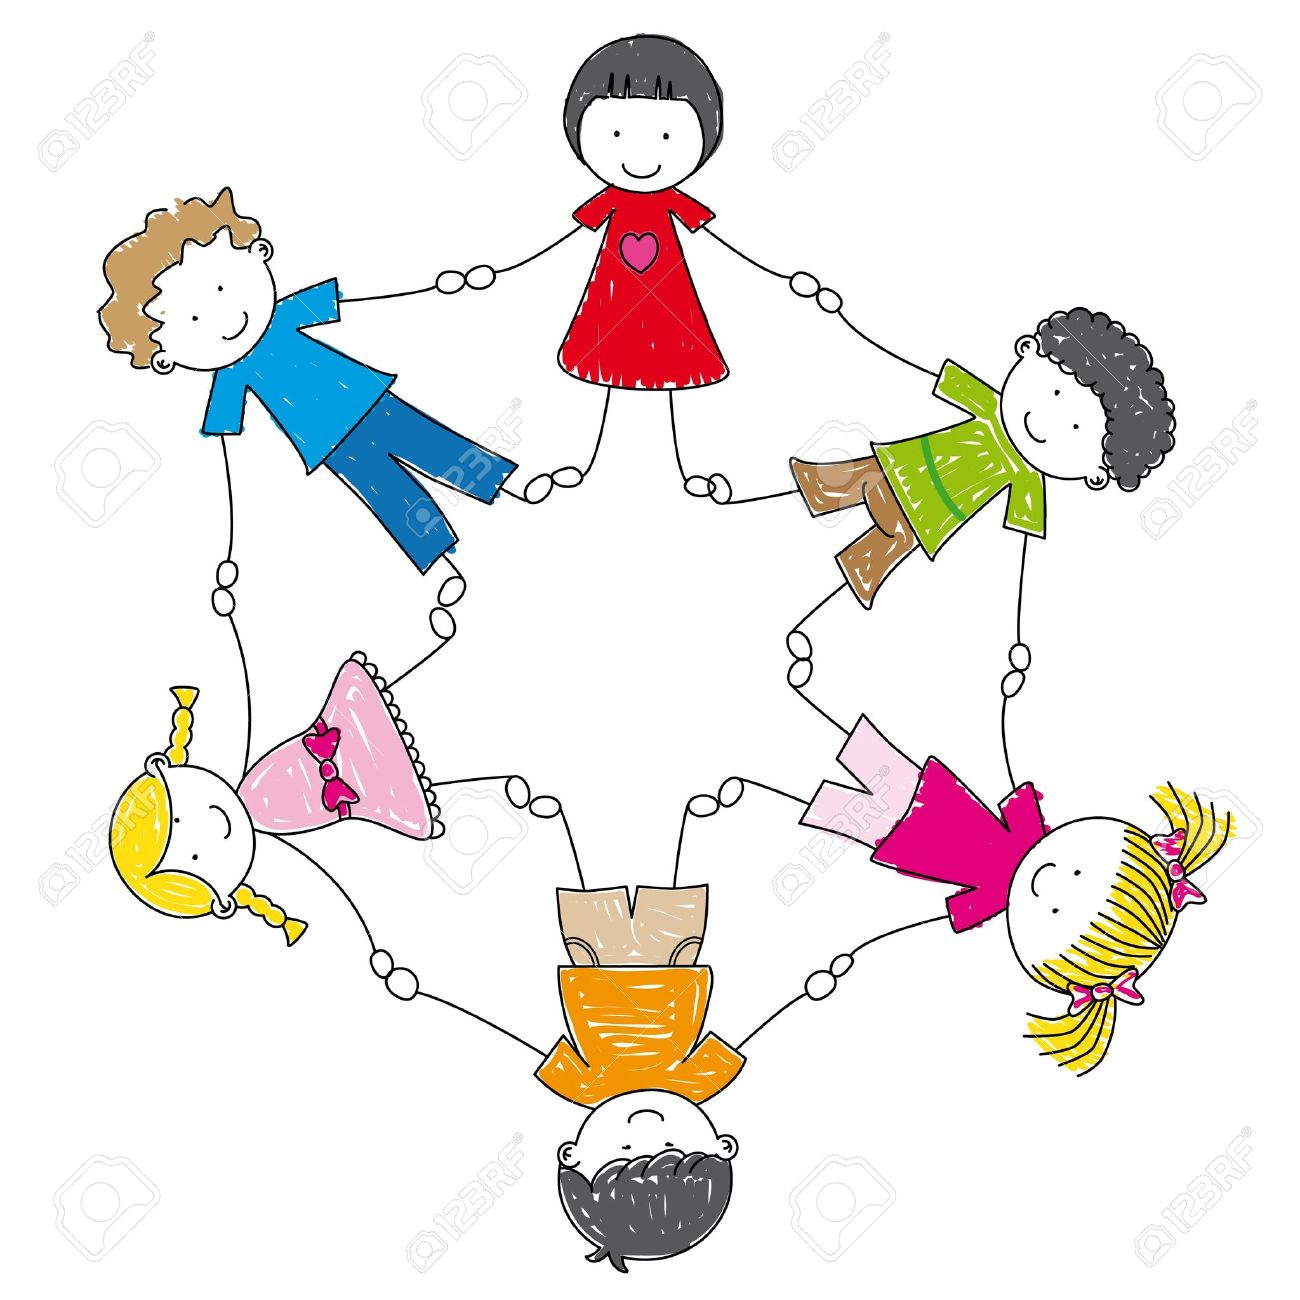 illustration children holding hands in a circle Stock Vector - 10467970